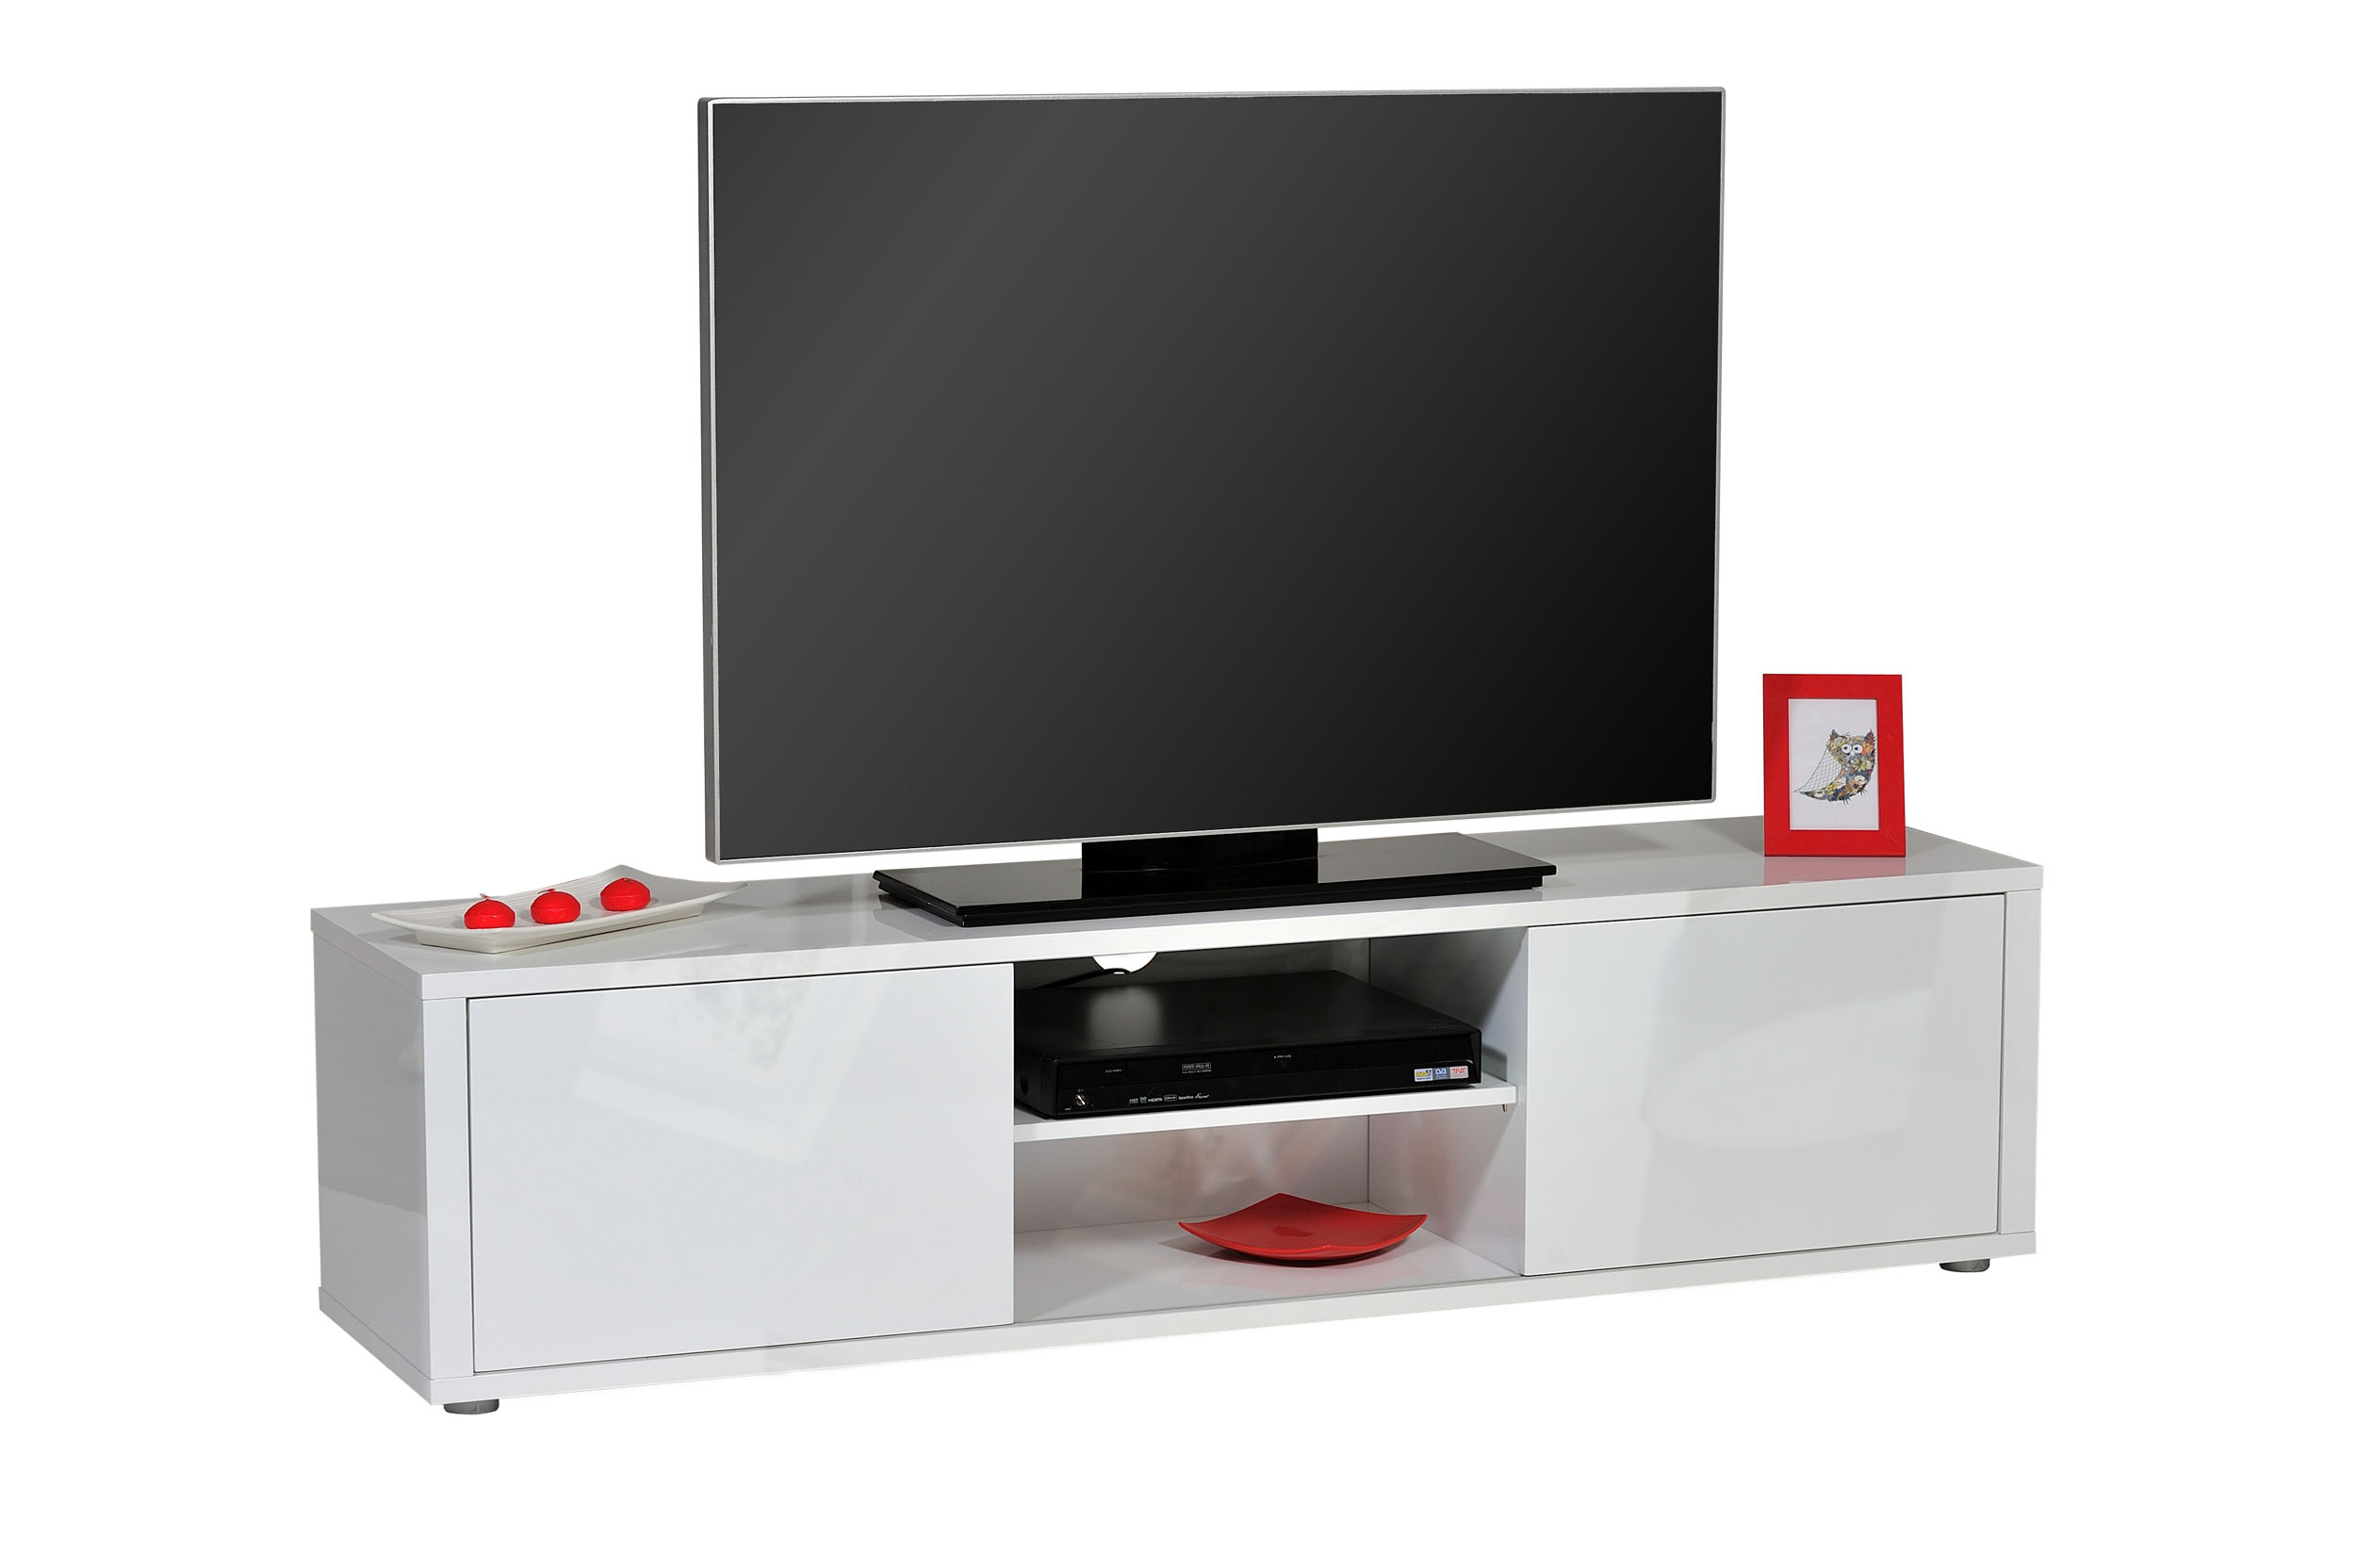 tv lowboard unterschrank ablage hifi regal weiss schwarz hochglanz lackiert ebay. Black Bedroom Furniture Sets. Home Design Ideas